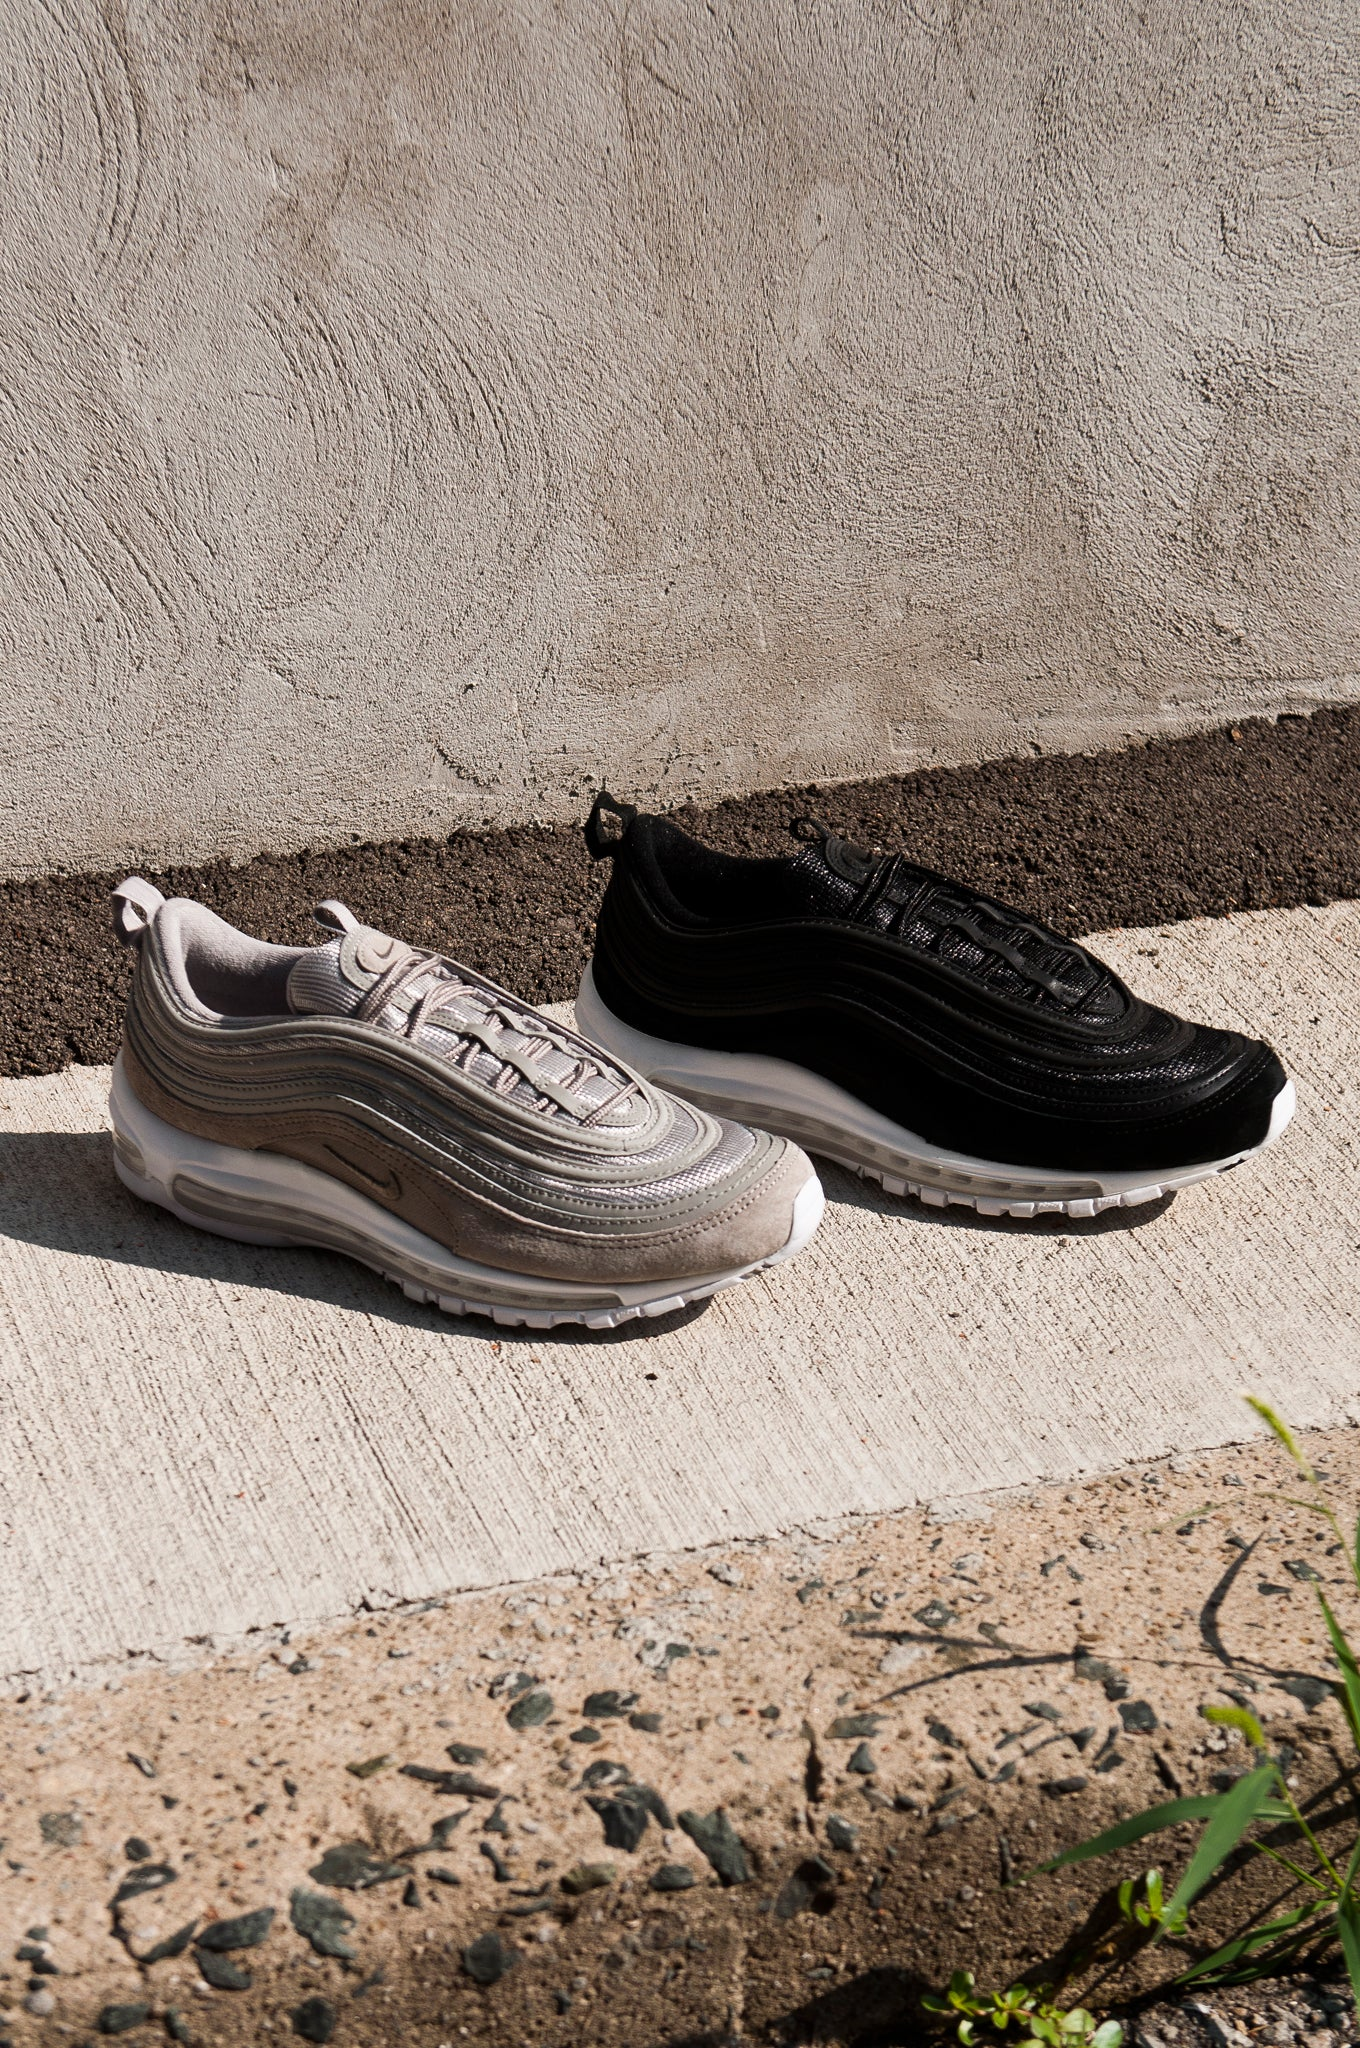 Nike Air Max 97 Black and Cobblestone 921826-003 -921826-002-